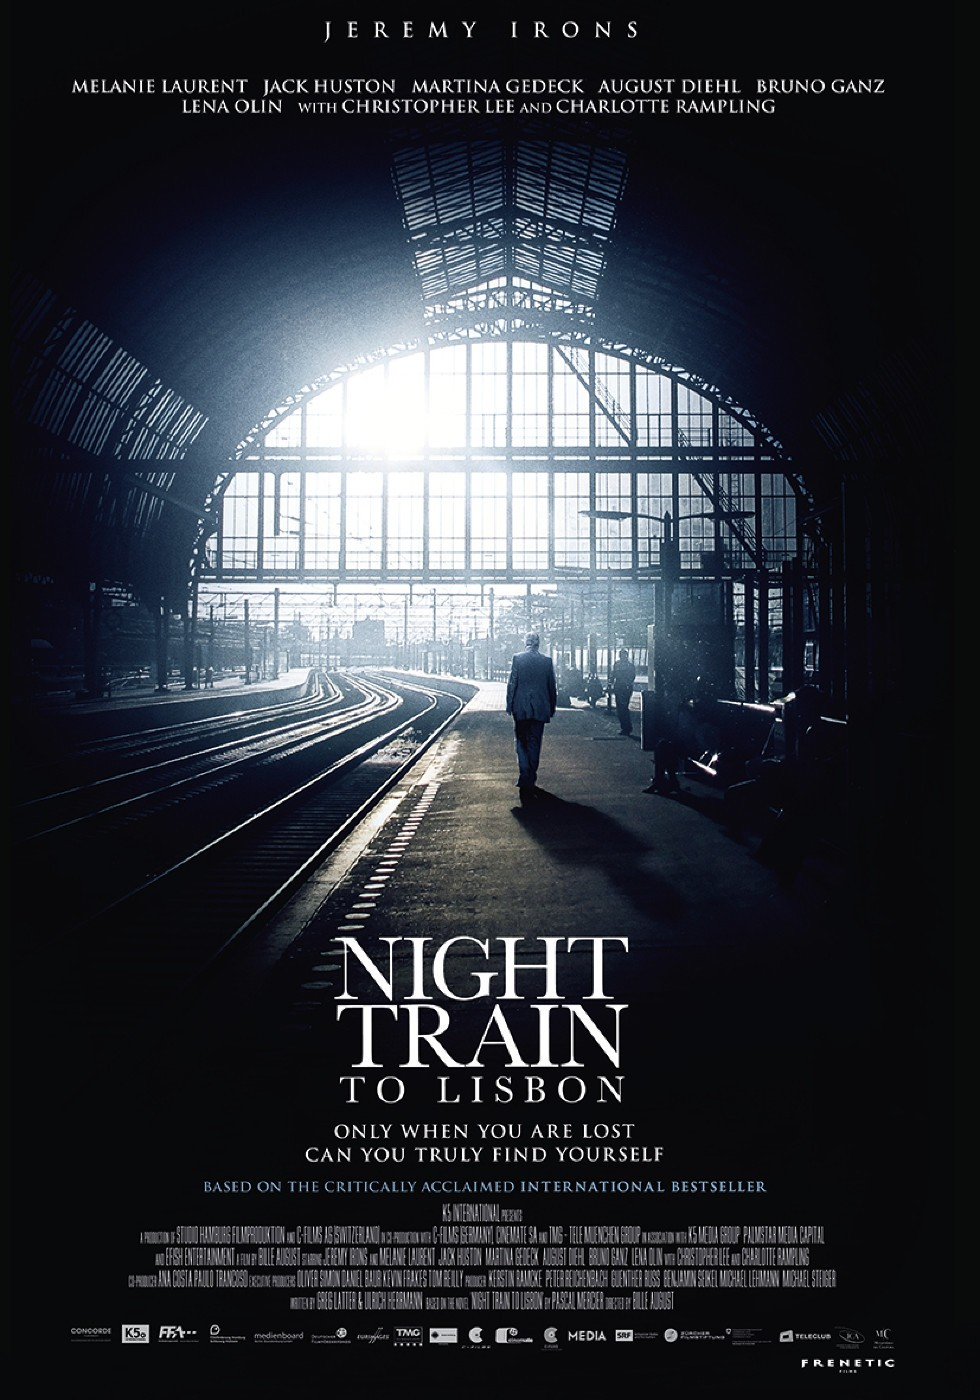 Night Train to Lisbon (2013)